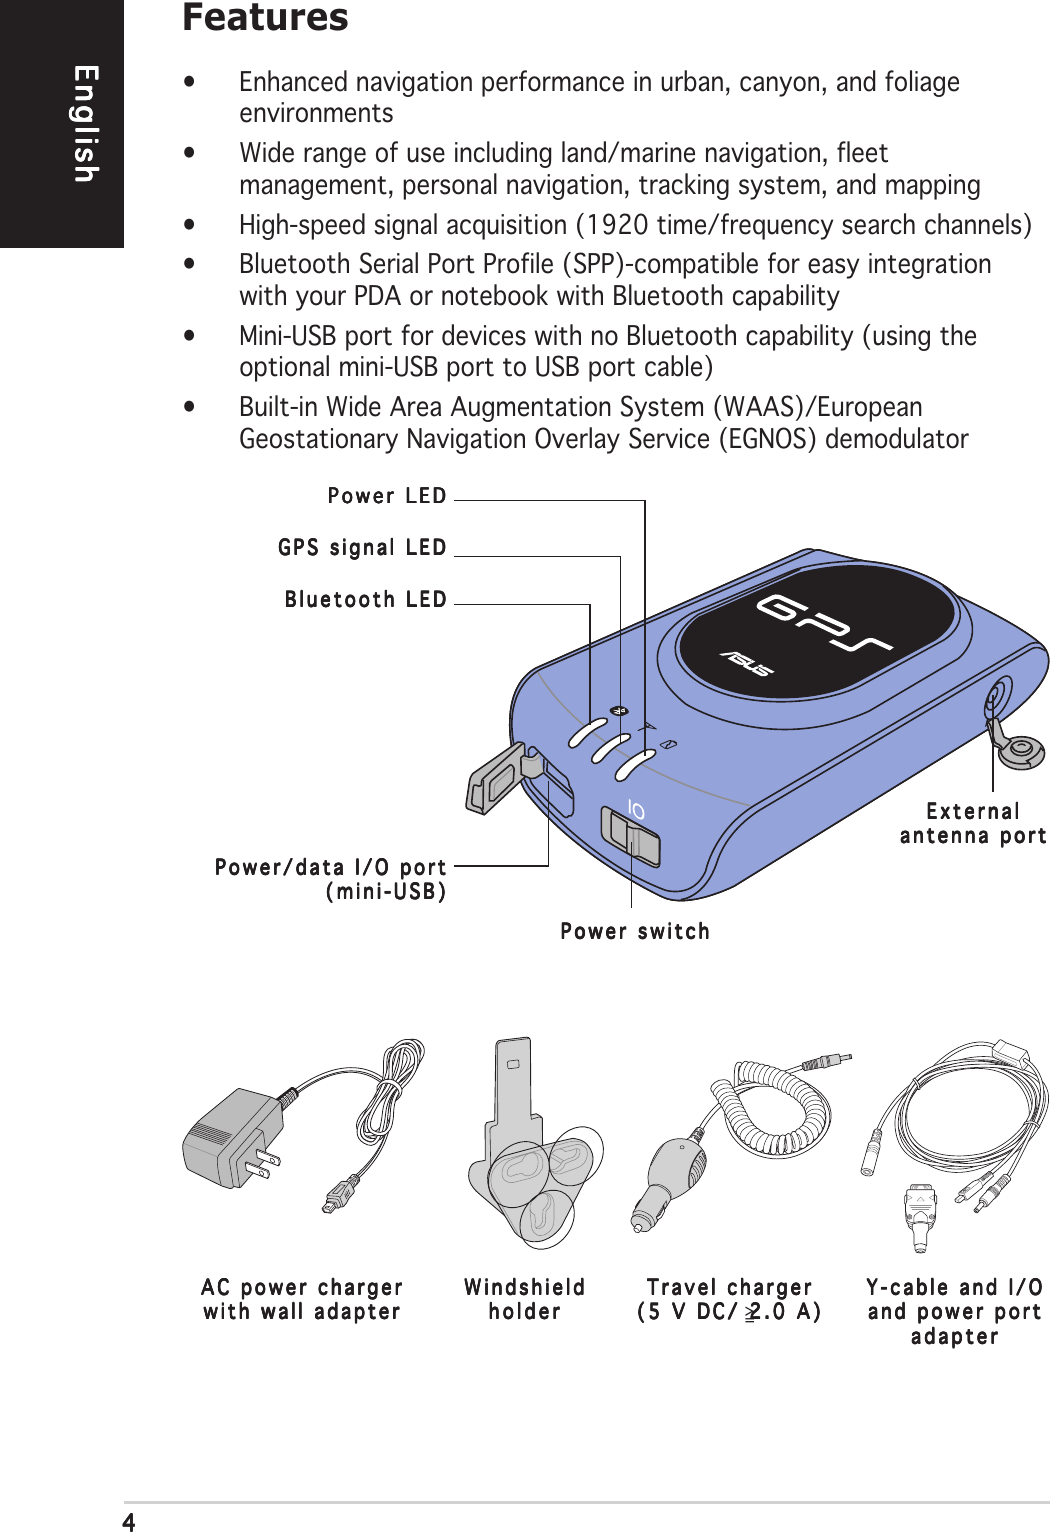 Asus Gps Bt100 Users Manual Usb Cable Wiring Diagram Page 4 Of 10